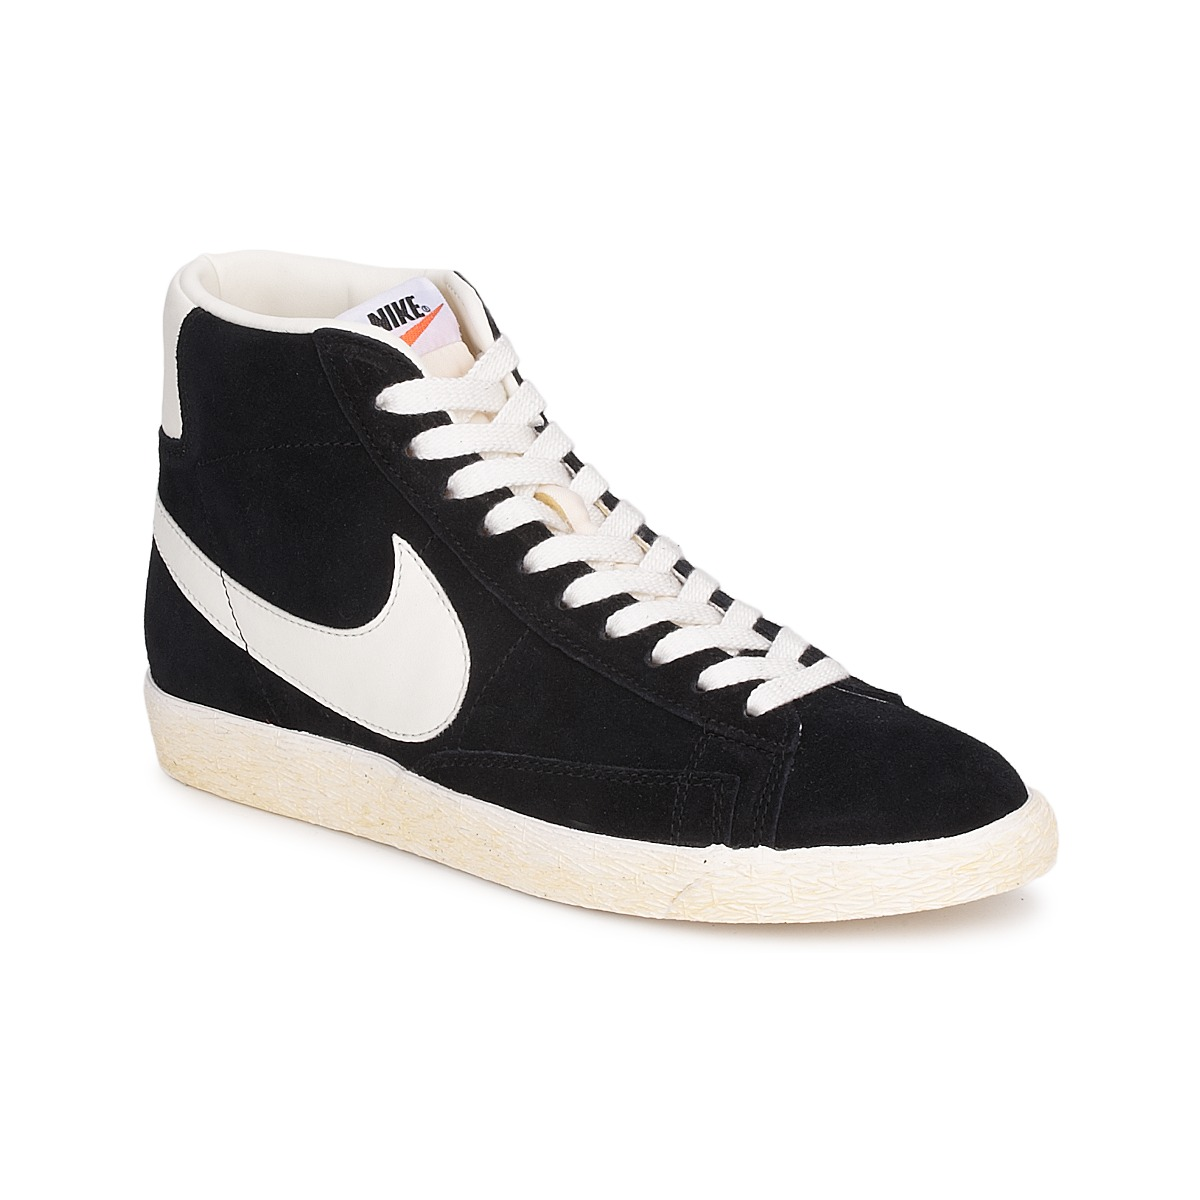 Nike Chaussure Chaussure Femme Montant Chaussure Montant Femme Nike Nike Montant EFxqwaSvU